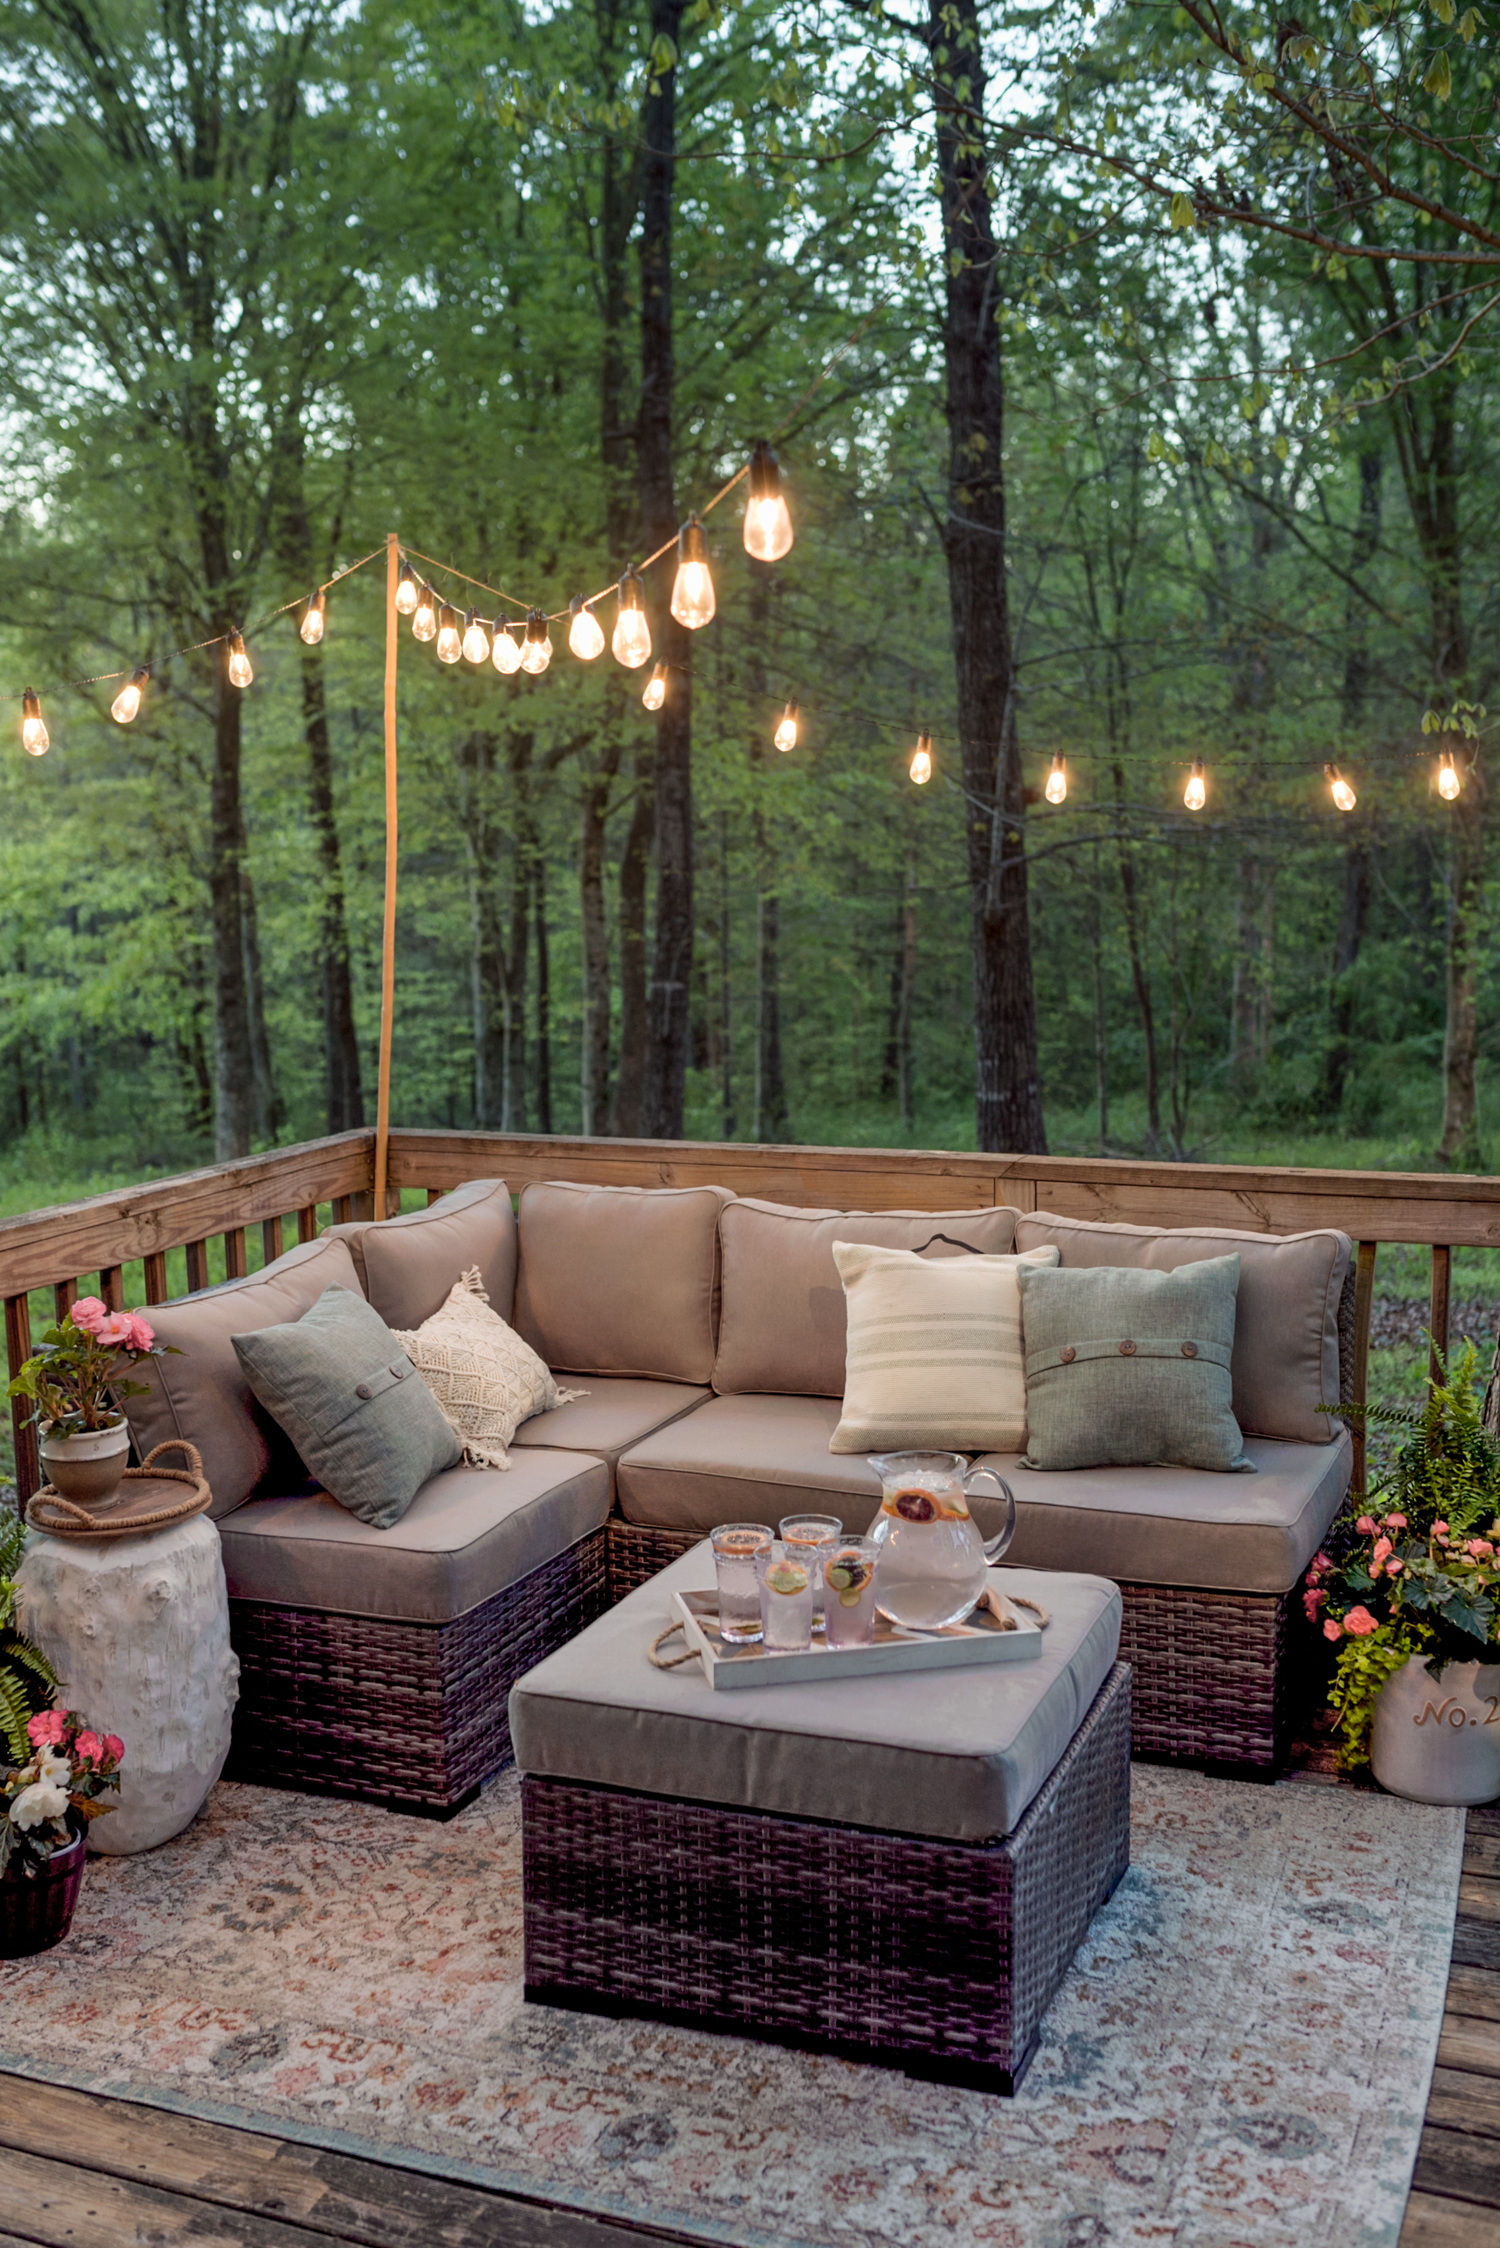 How To Decorate With String Lights Outdoors